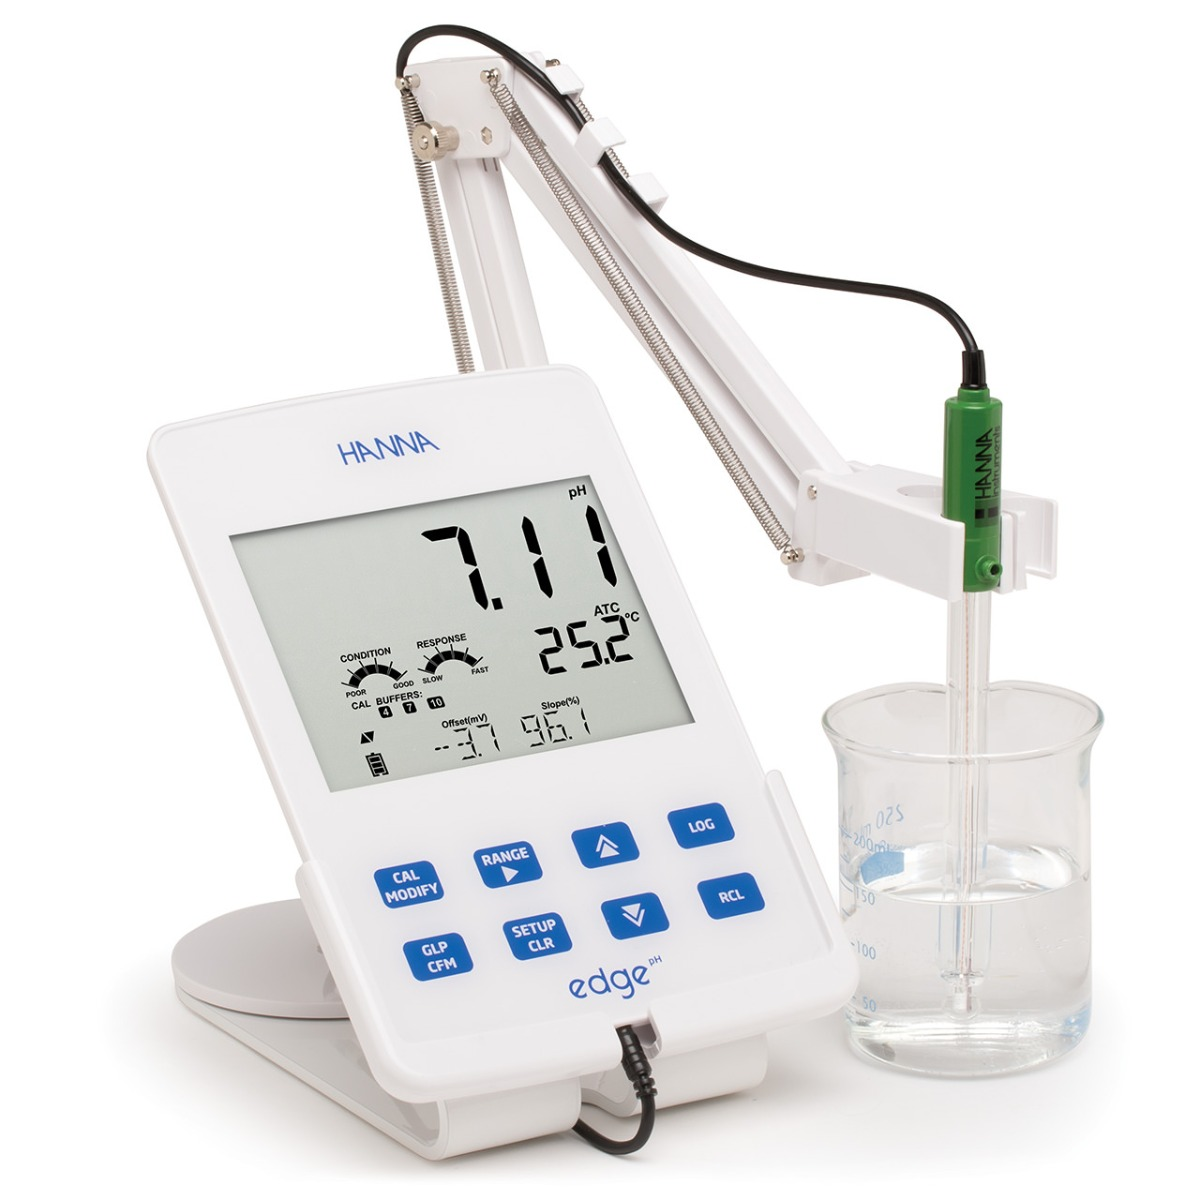 edge® Dedicated pH/ORP Meter - HI2002